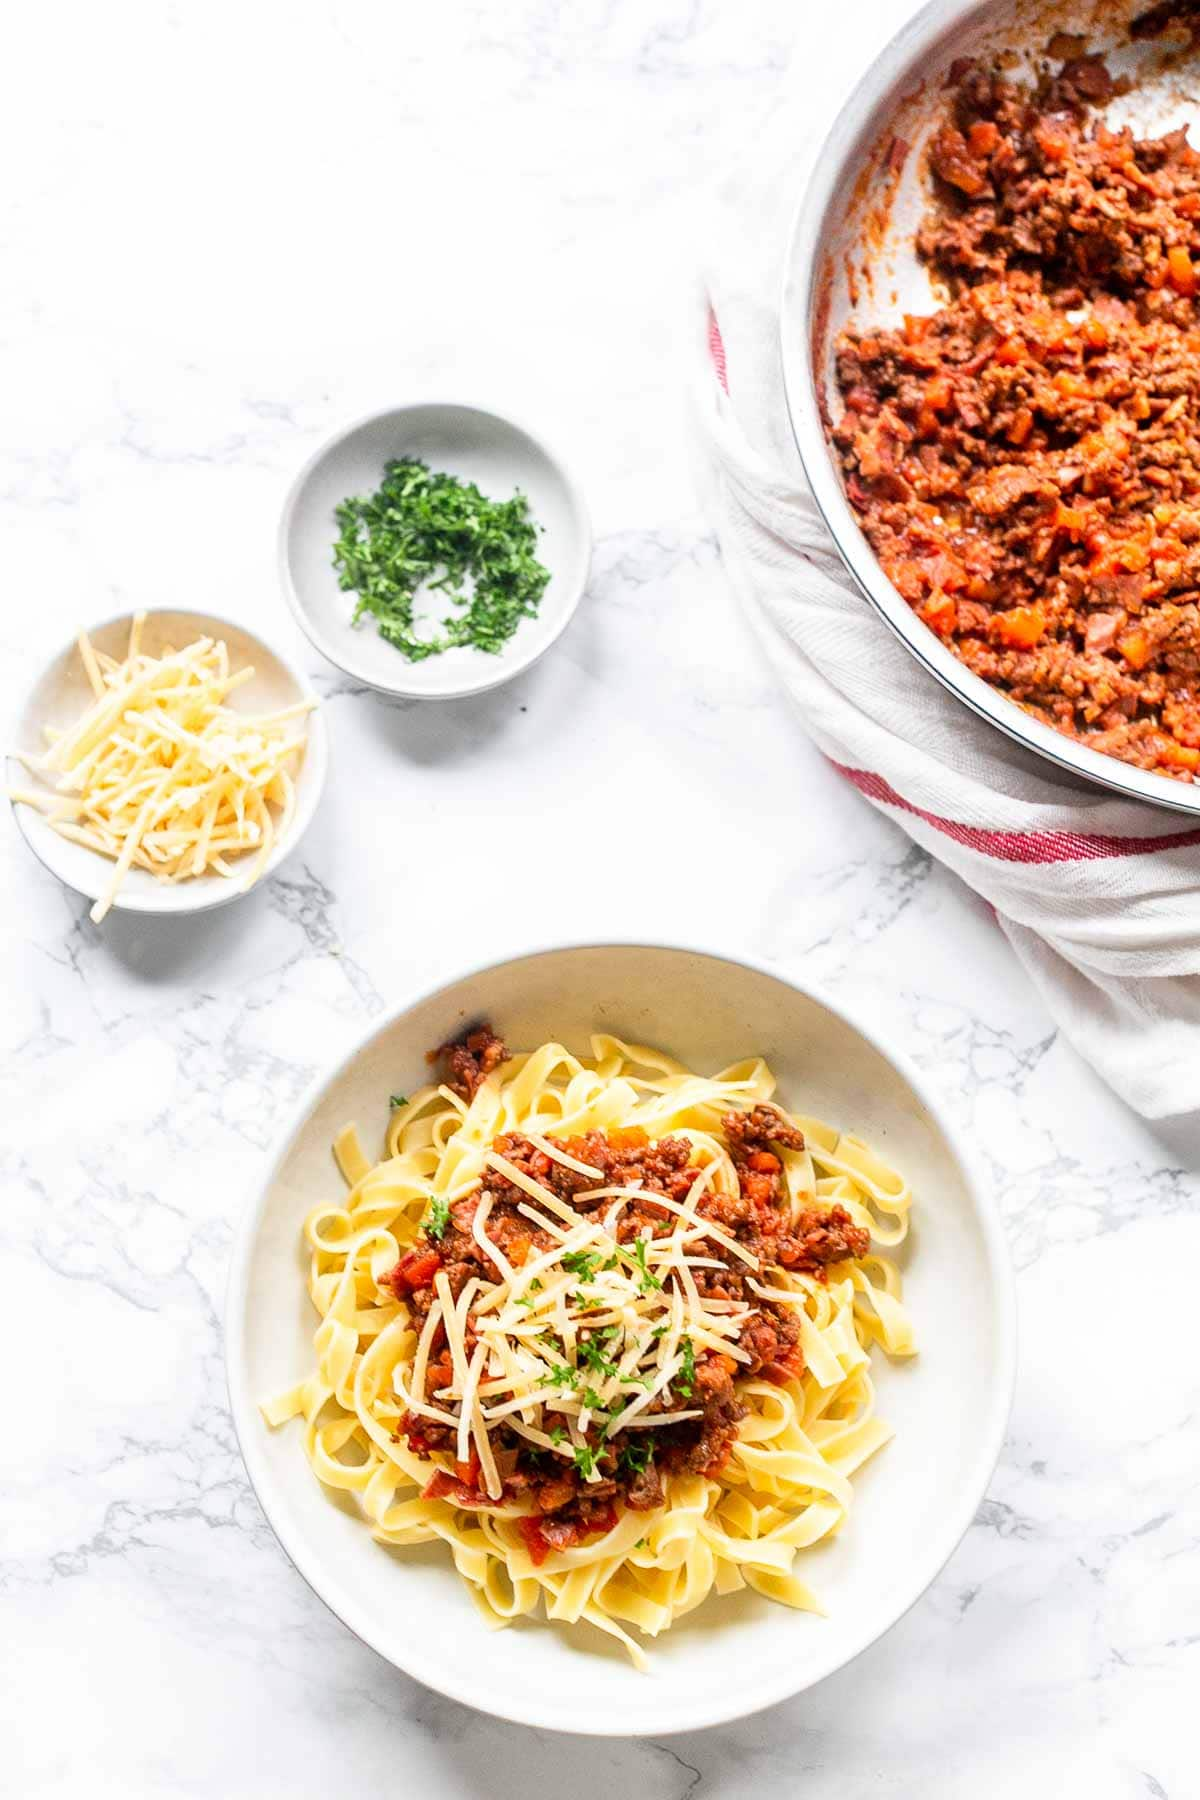 The best homemade tagliatelle Bolognese you ever tried! Bolognese alla ragu is a thick meat sauce without tomatoes. Give it a try and visit fastfoodbistro.com for the full recipe #fastfoodbistro #tagliatellebolognese #pastabolognese #pastalragu